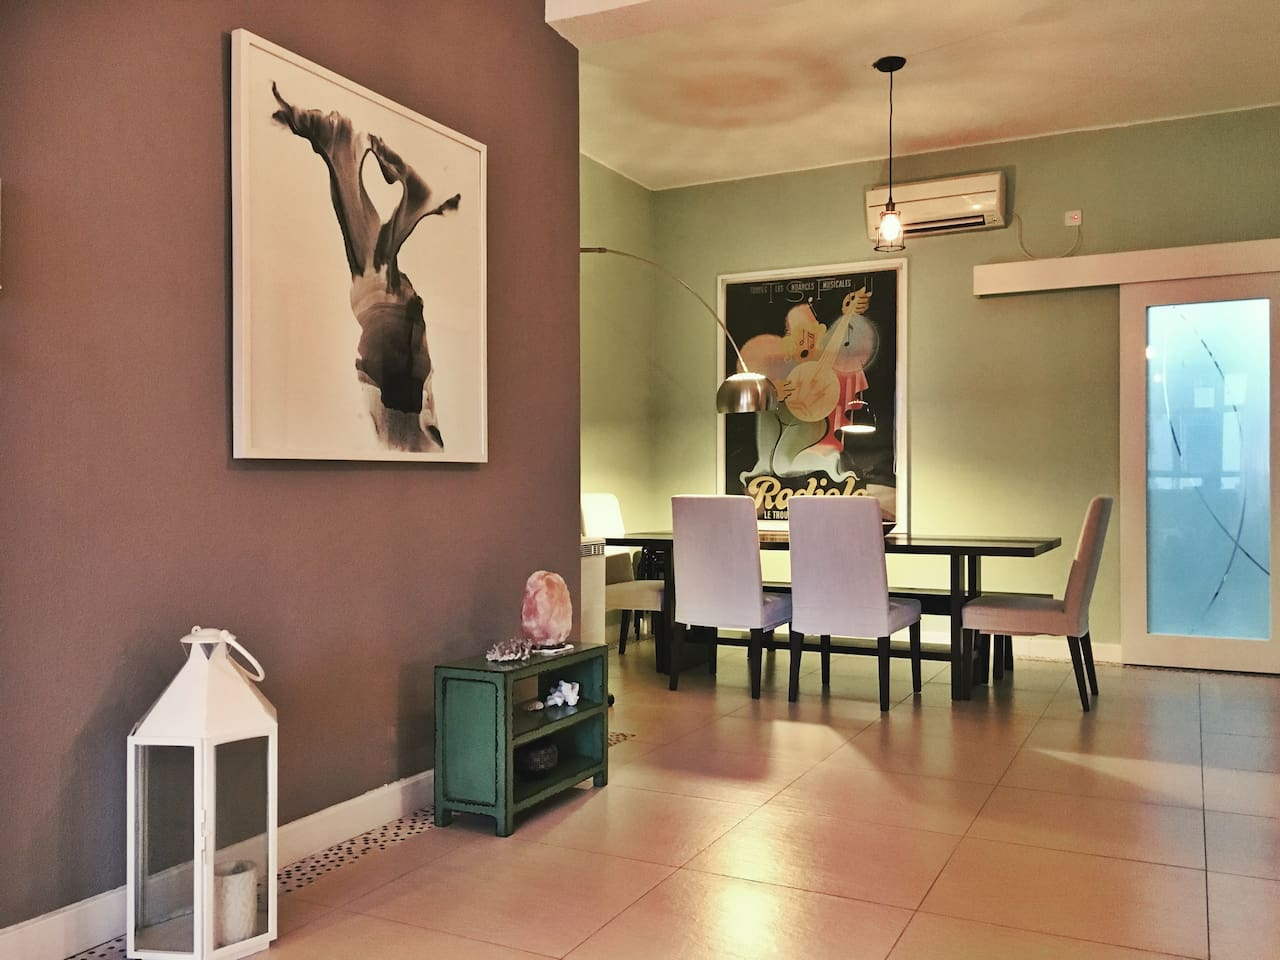 Shared Dining Space Featuring Original Art from China and France